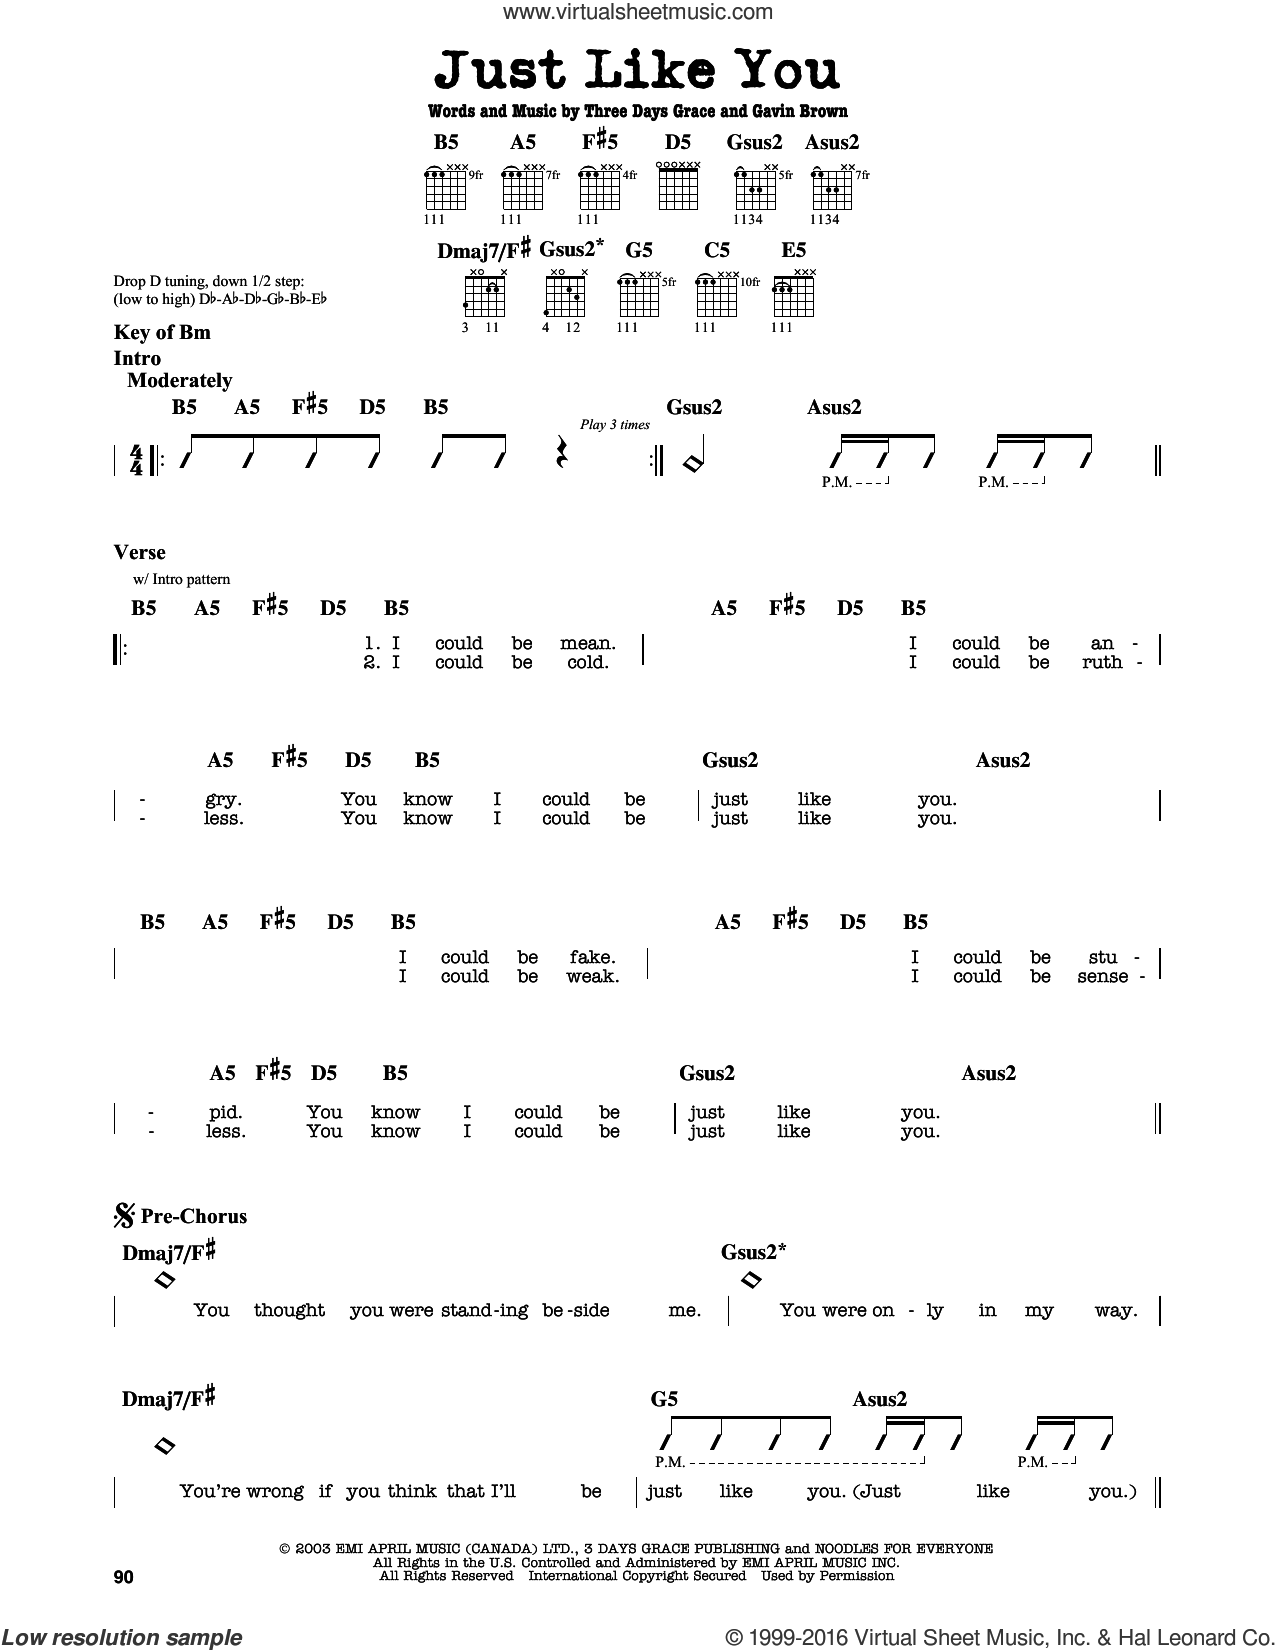 Just Like You sheet music for guitar solo (lead sheet) by Three Days Grace and Gavin Brown, intermediate guitar (lead sheet). Score Image Preview.